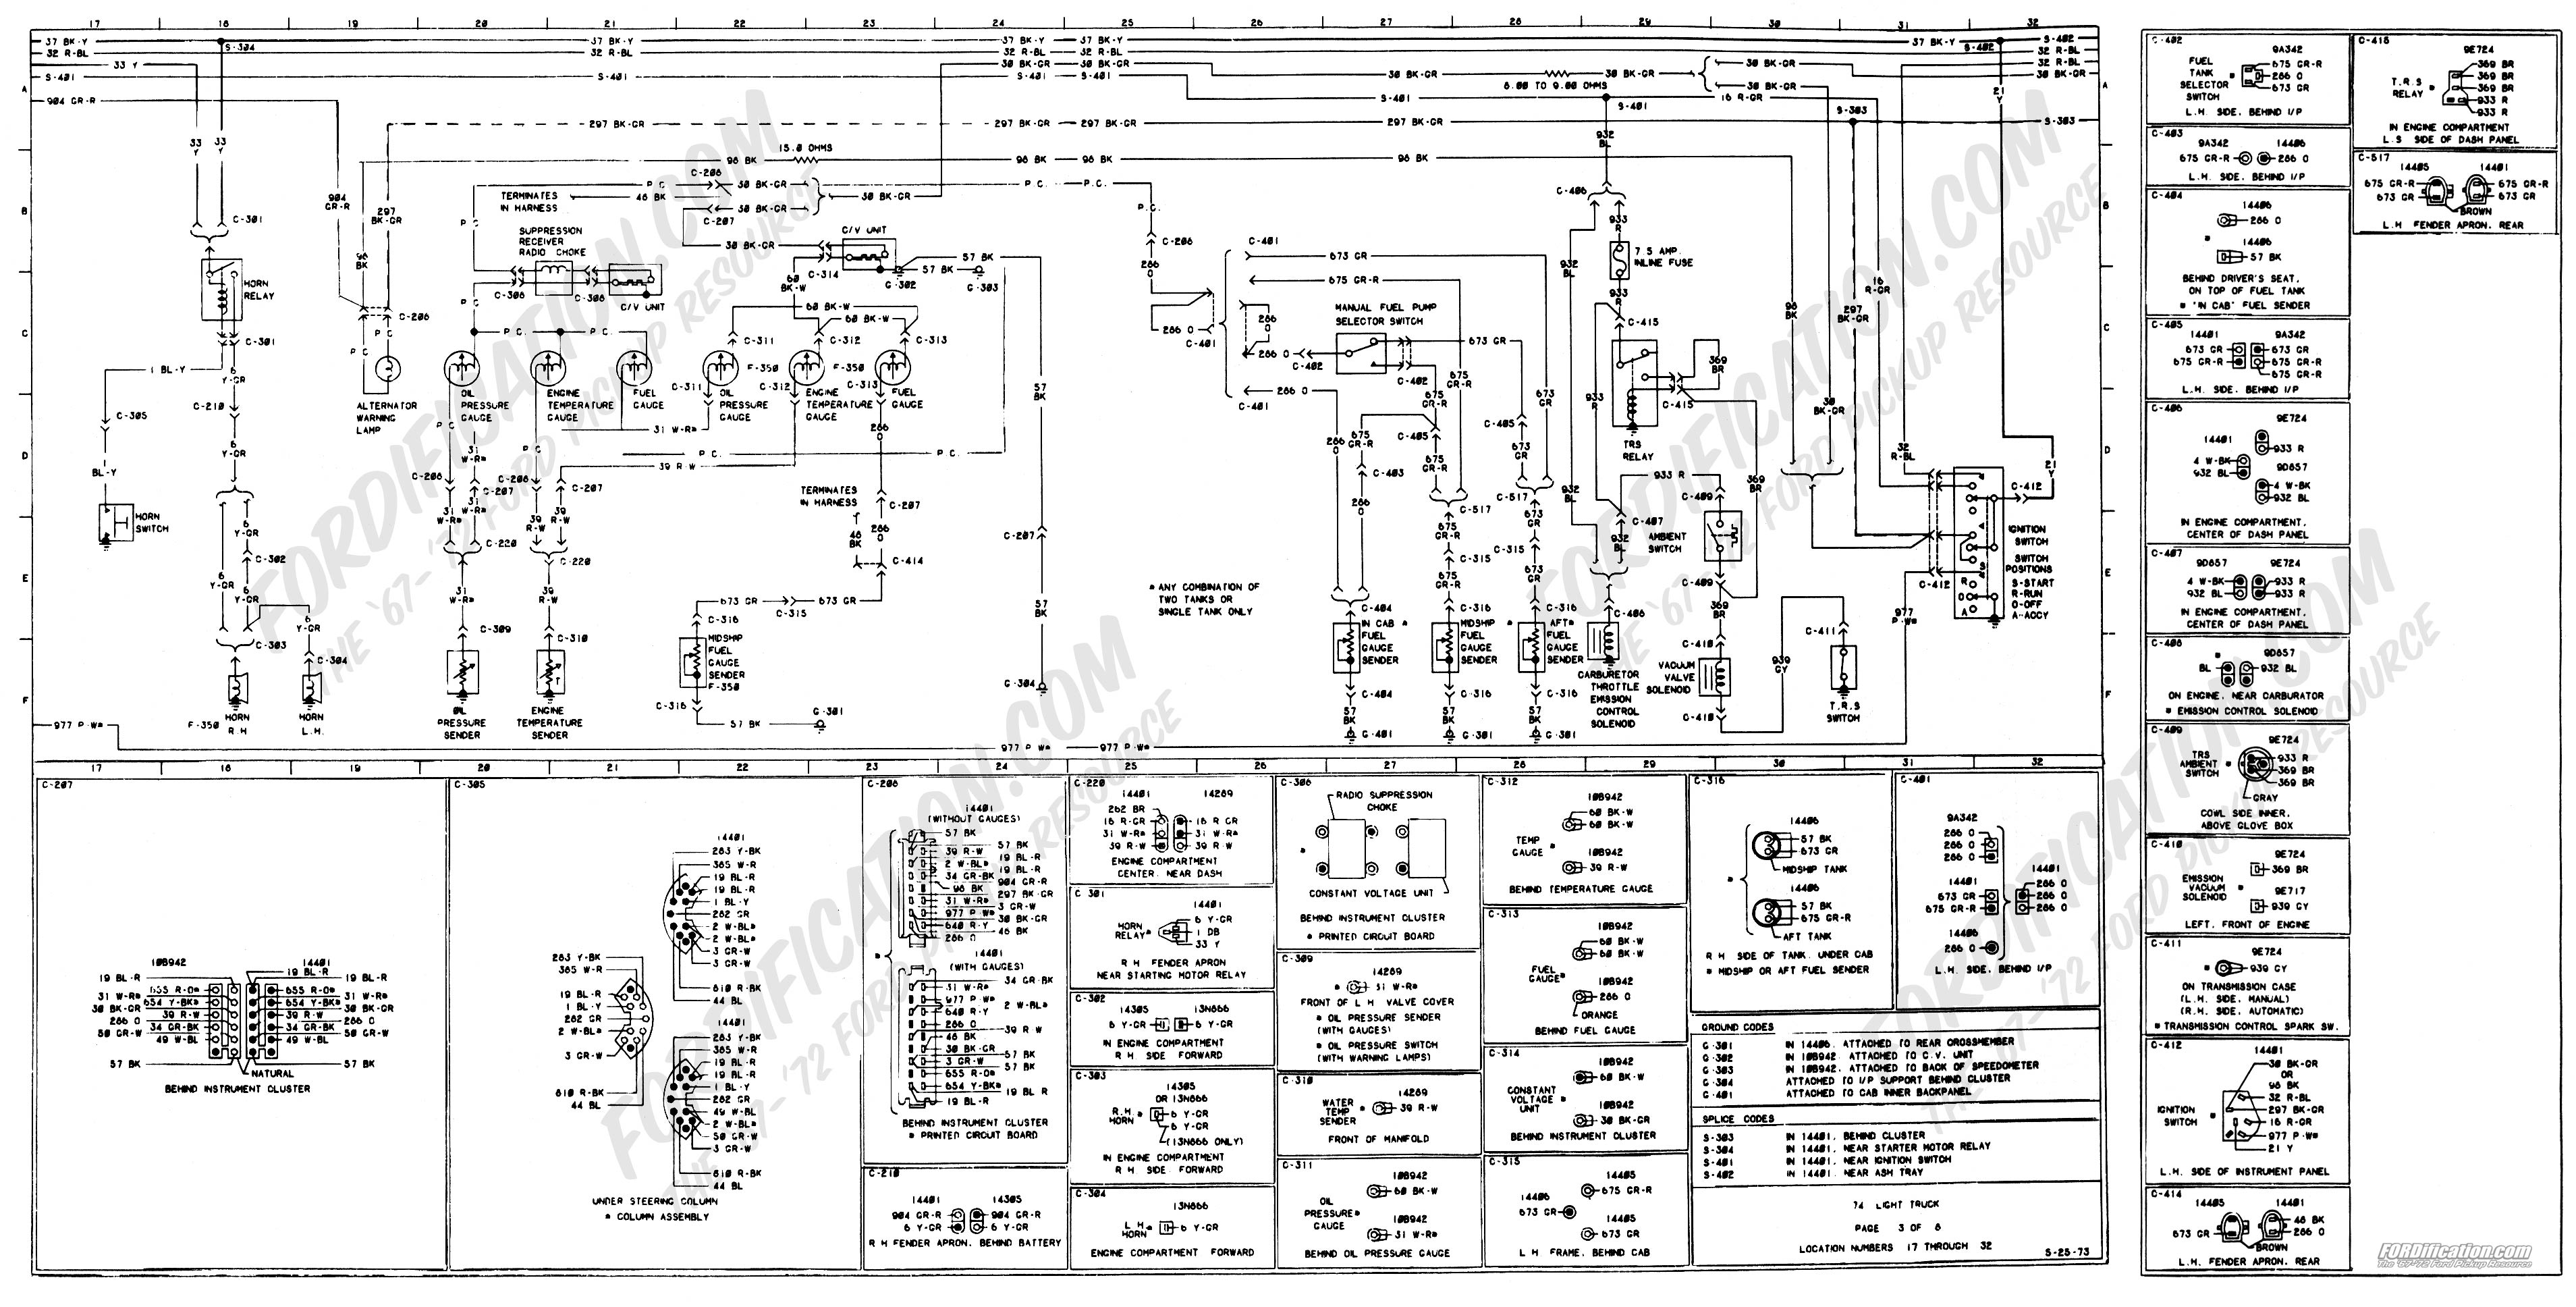 wiring_74master_3of8 1995 ford l9000 wiring schematic ford l9000 fuse \u2022 wiring diagrams 2014 Ford F-250 Super Duty at eliteediting.co